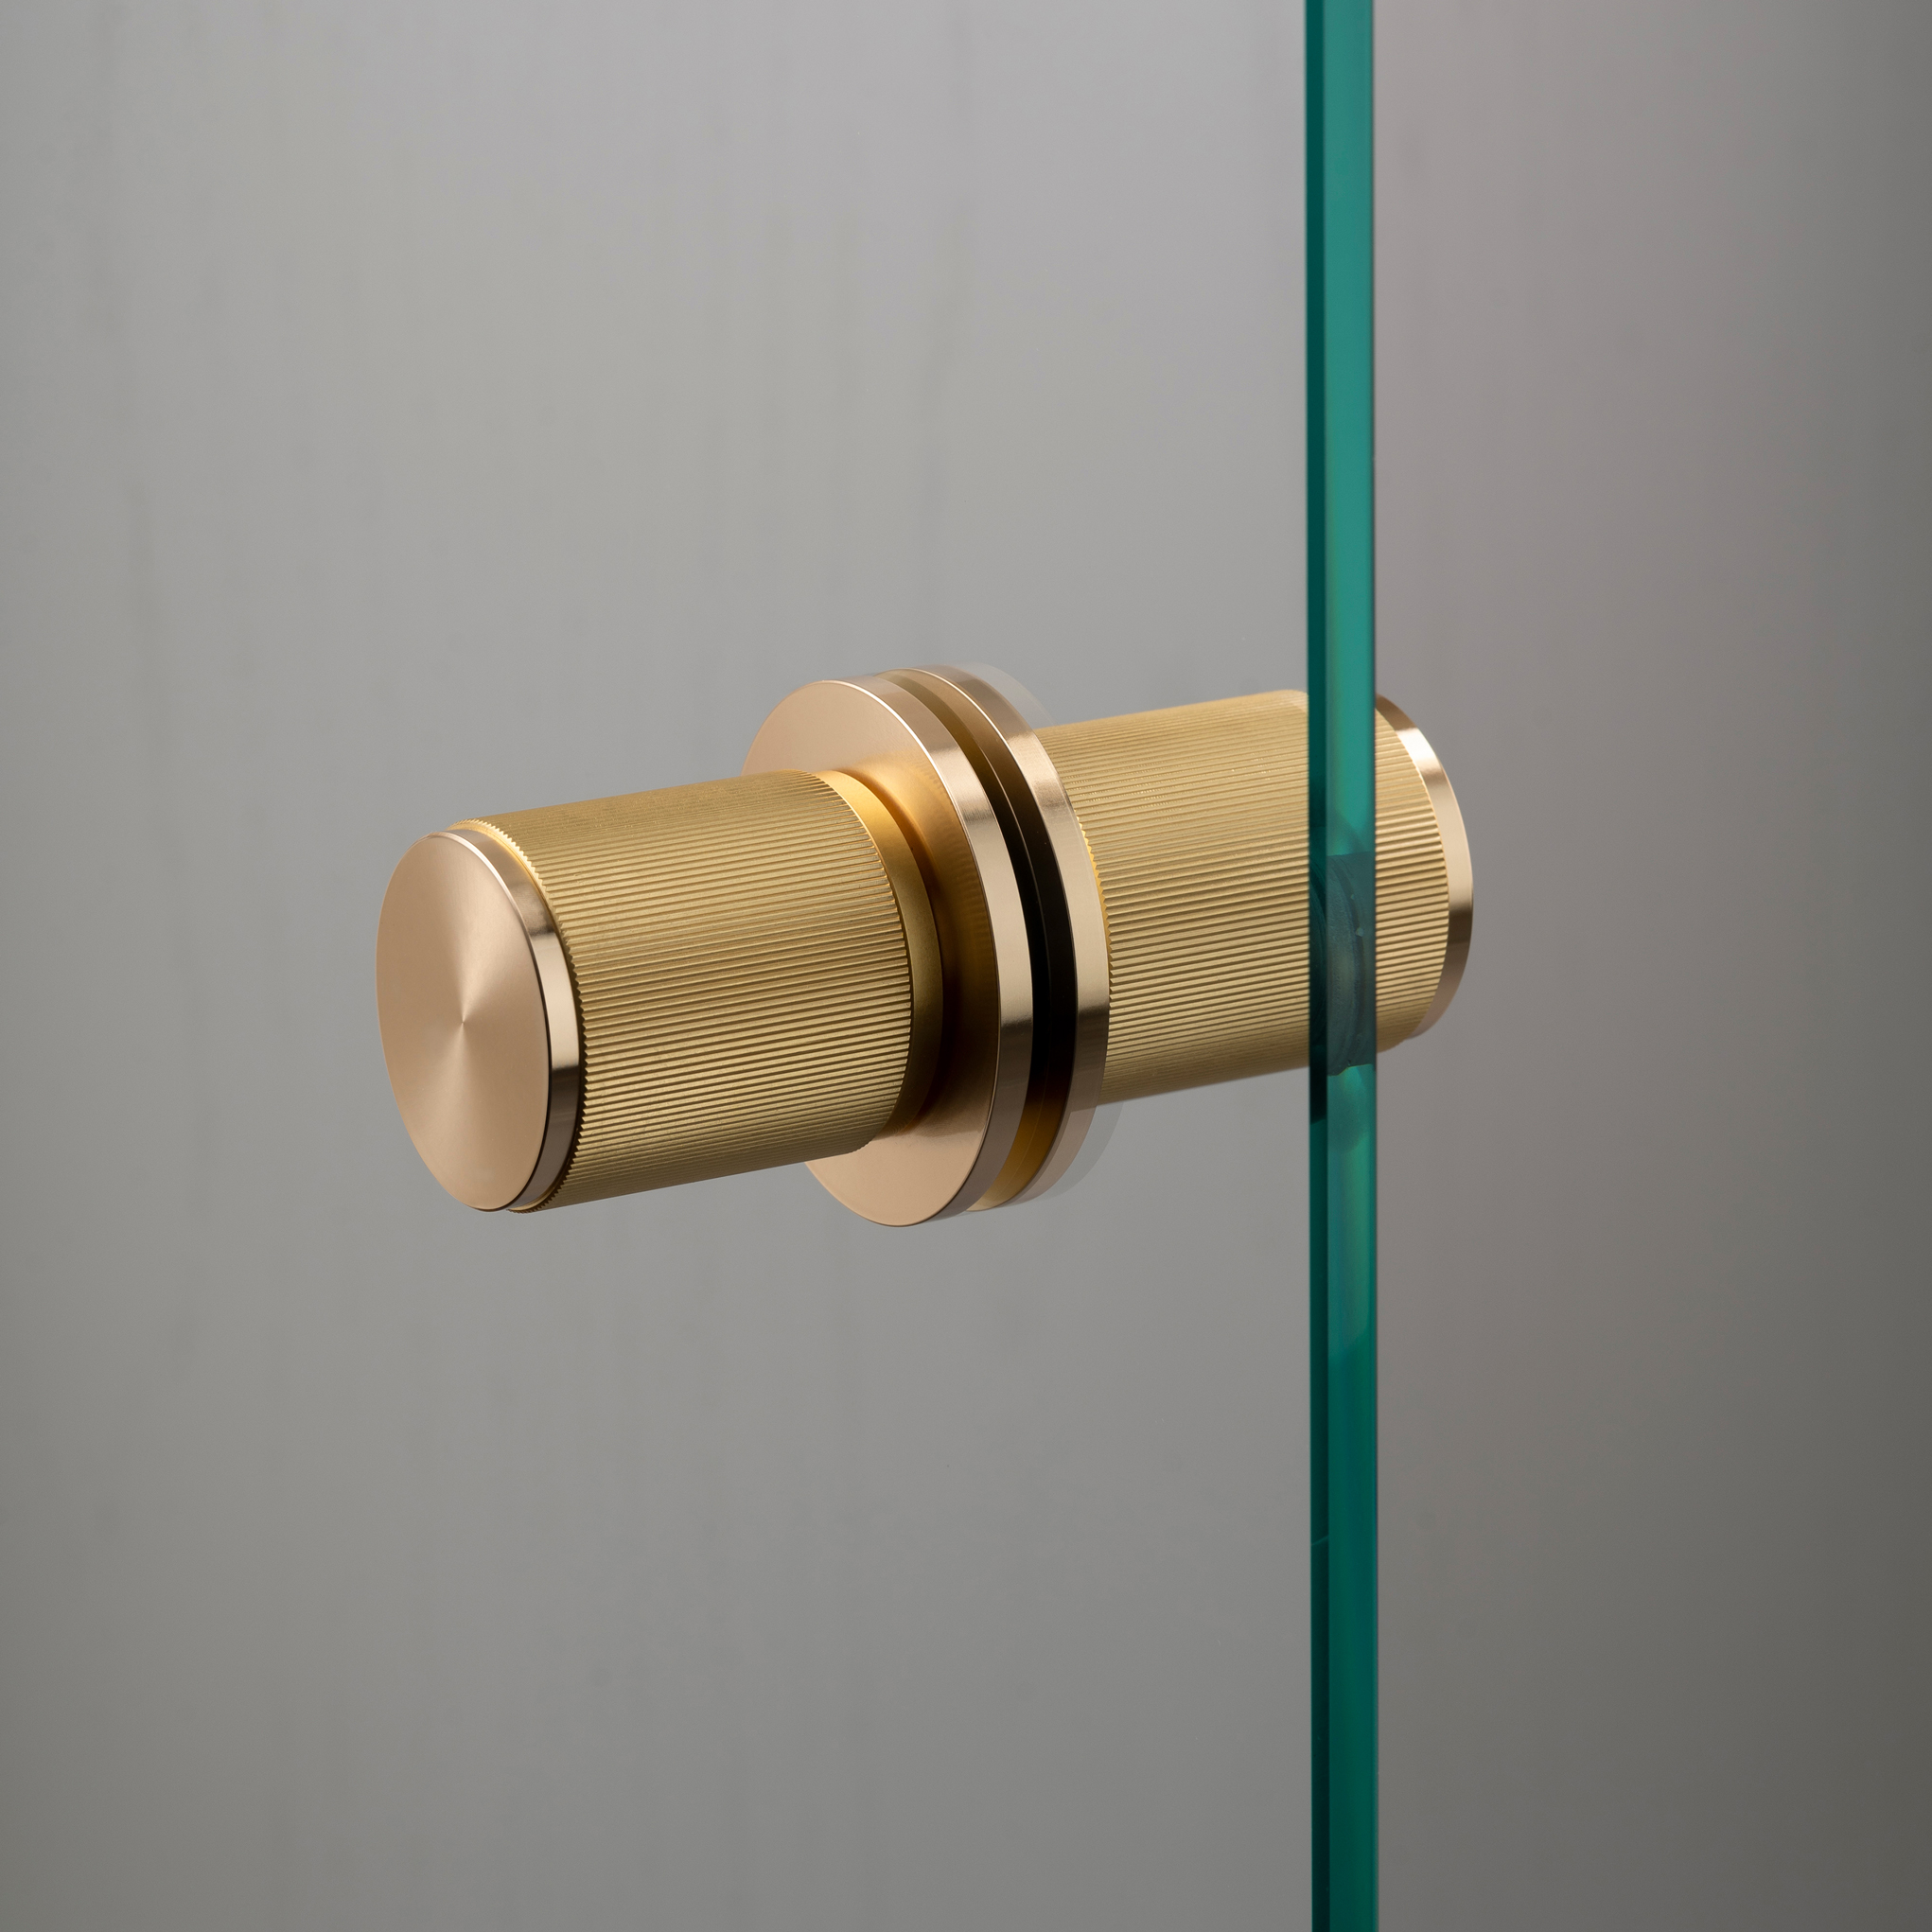 Door-knob_Fixed_Linear_Double-sided_Glass_Brass_A2_Web